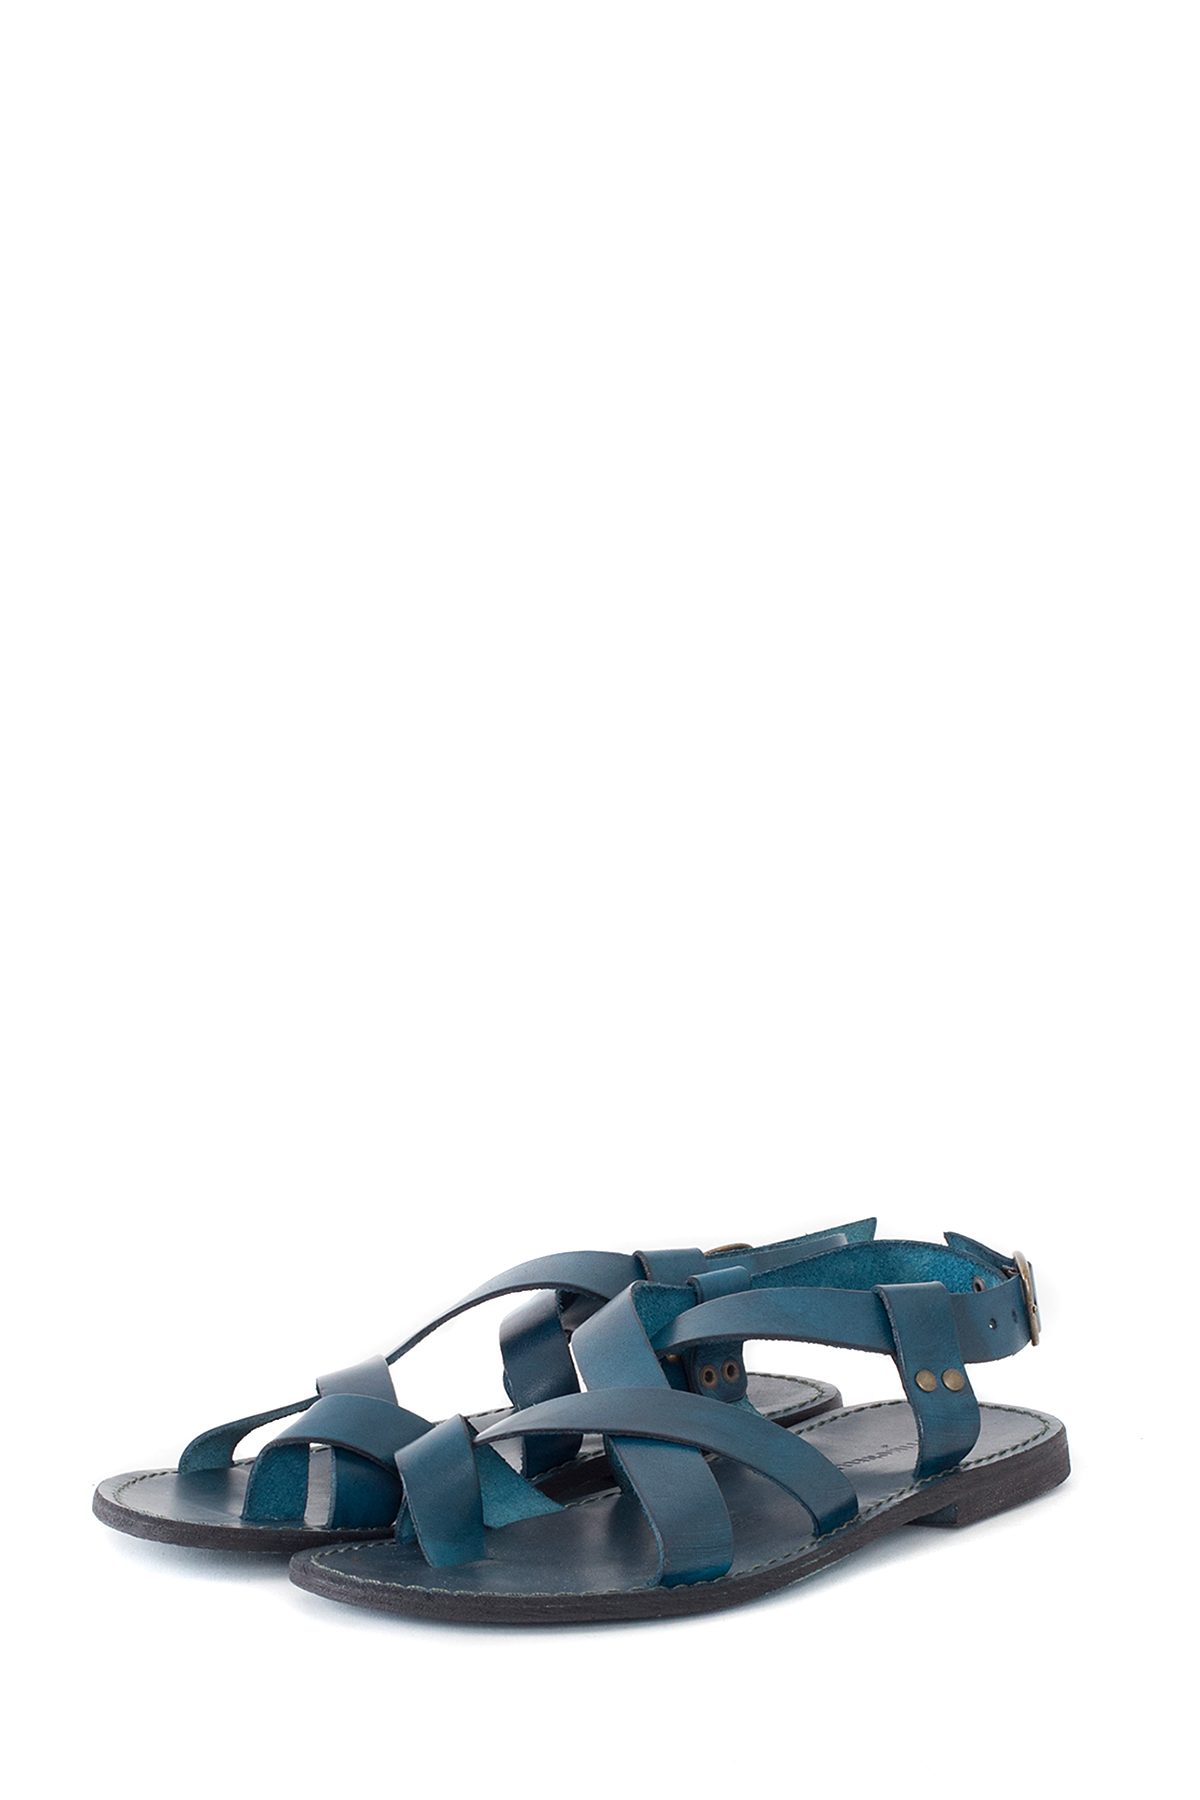 ATTIMONELLI'S : Soft Leather Flip Flops (Navy)